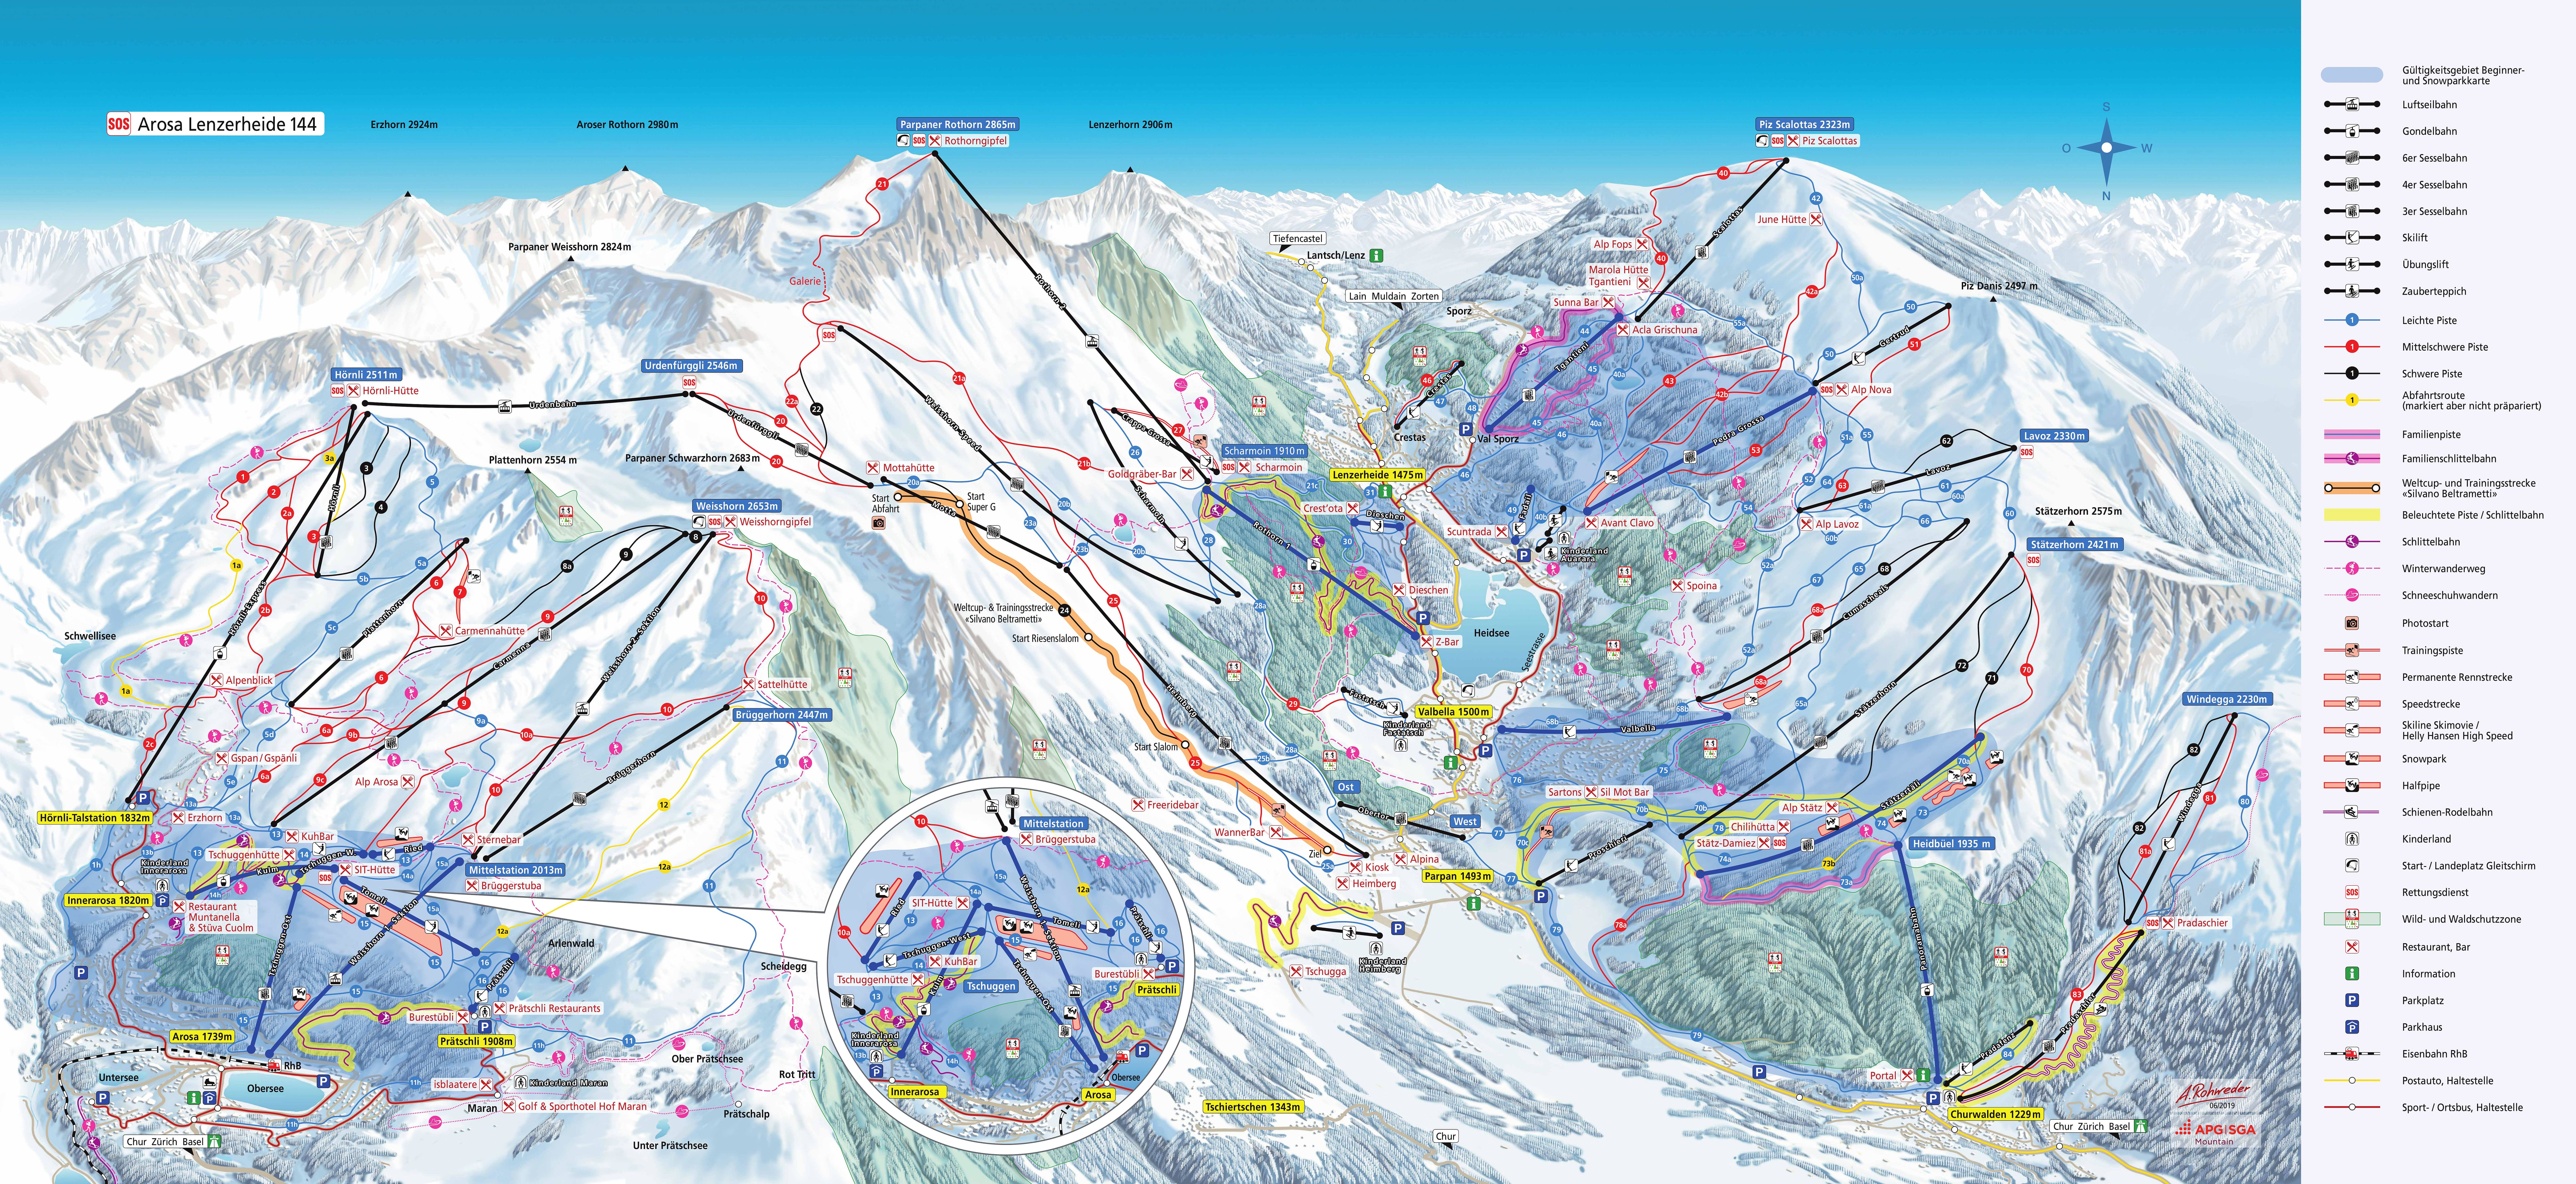 Arosa Piste / Trail Map